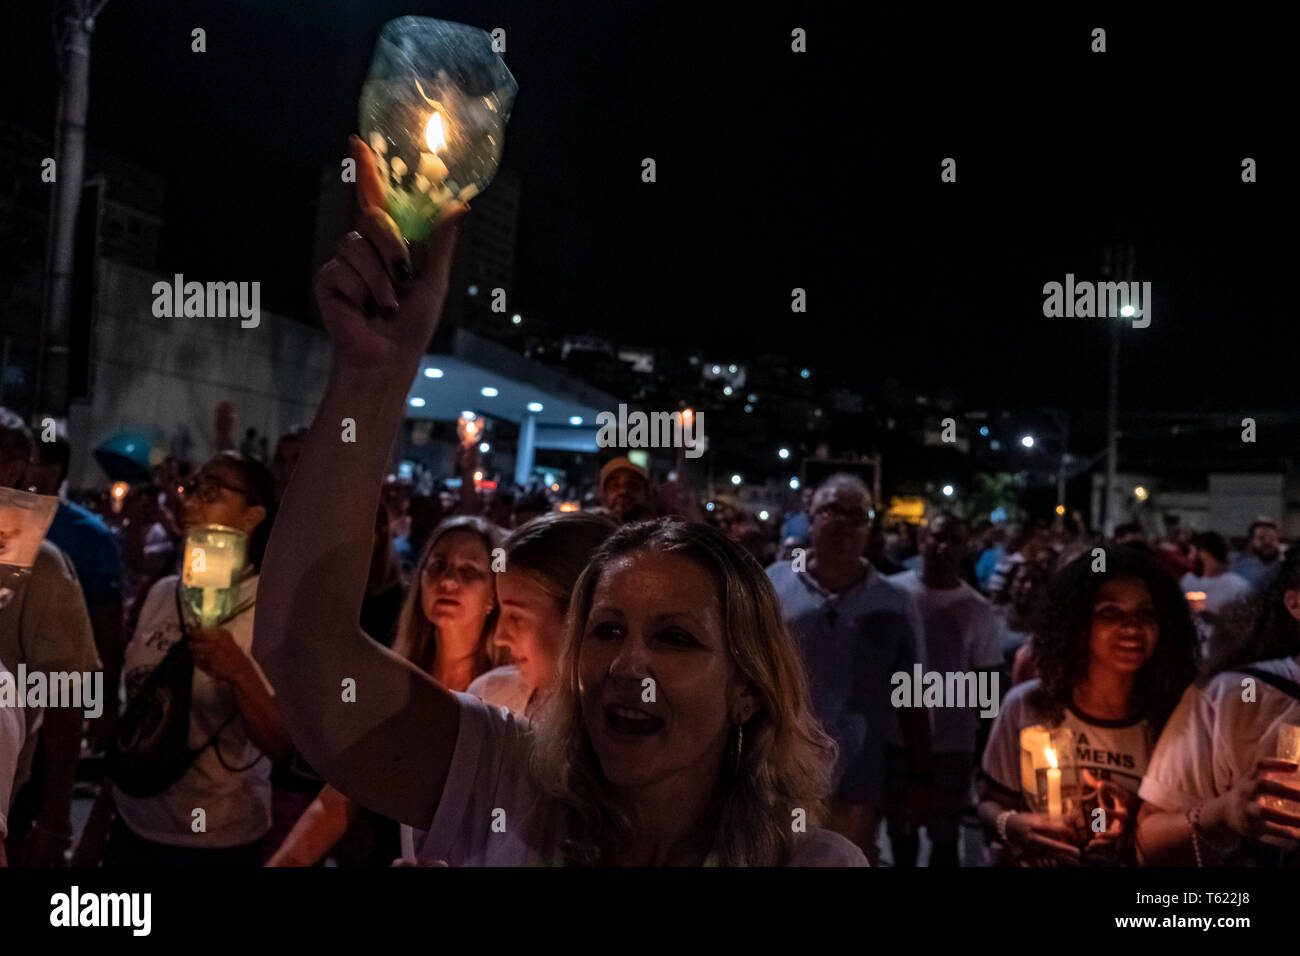 27 April 2019, Brazil, Vitória do Espírito Santo: A woman lifts a candle and sings during the pilgrimage in the city of Vitória do Espírito Santo in southeast Brazil. The 'Romería de los hombres' (men's pilgrimage) is a pilgrimage of Catholic believers that has been celebrated every year since 1958. The pilgrimage is considered one of the three largest in Brazil. According to the Catholic Church, about 700,000 people attended the event this year. Photo: Diego Herculano/dpa - Stock Image